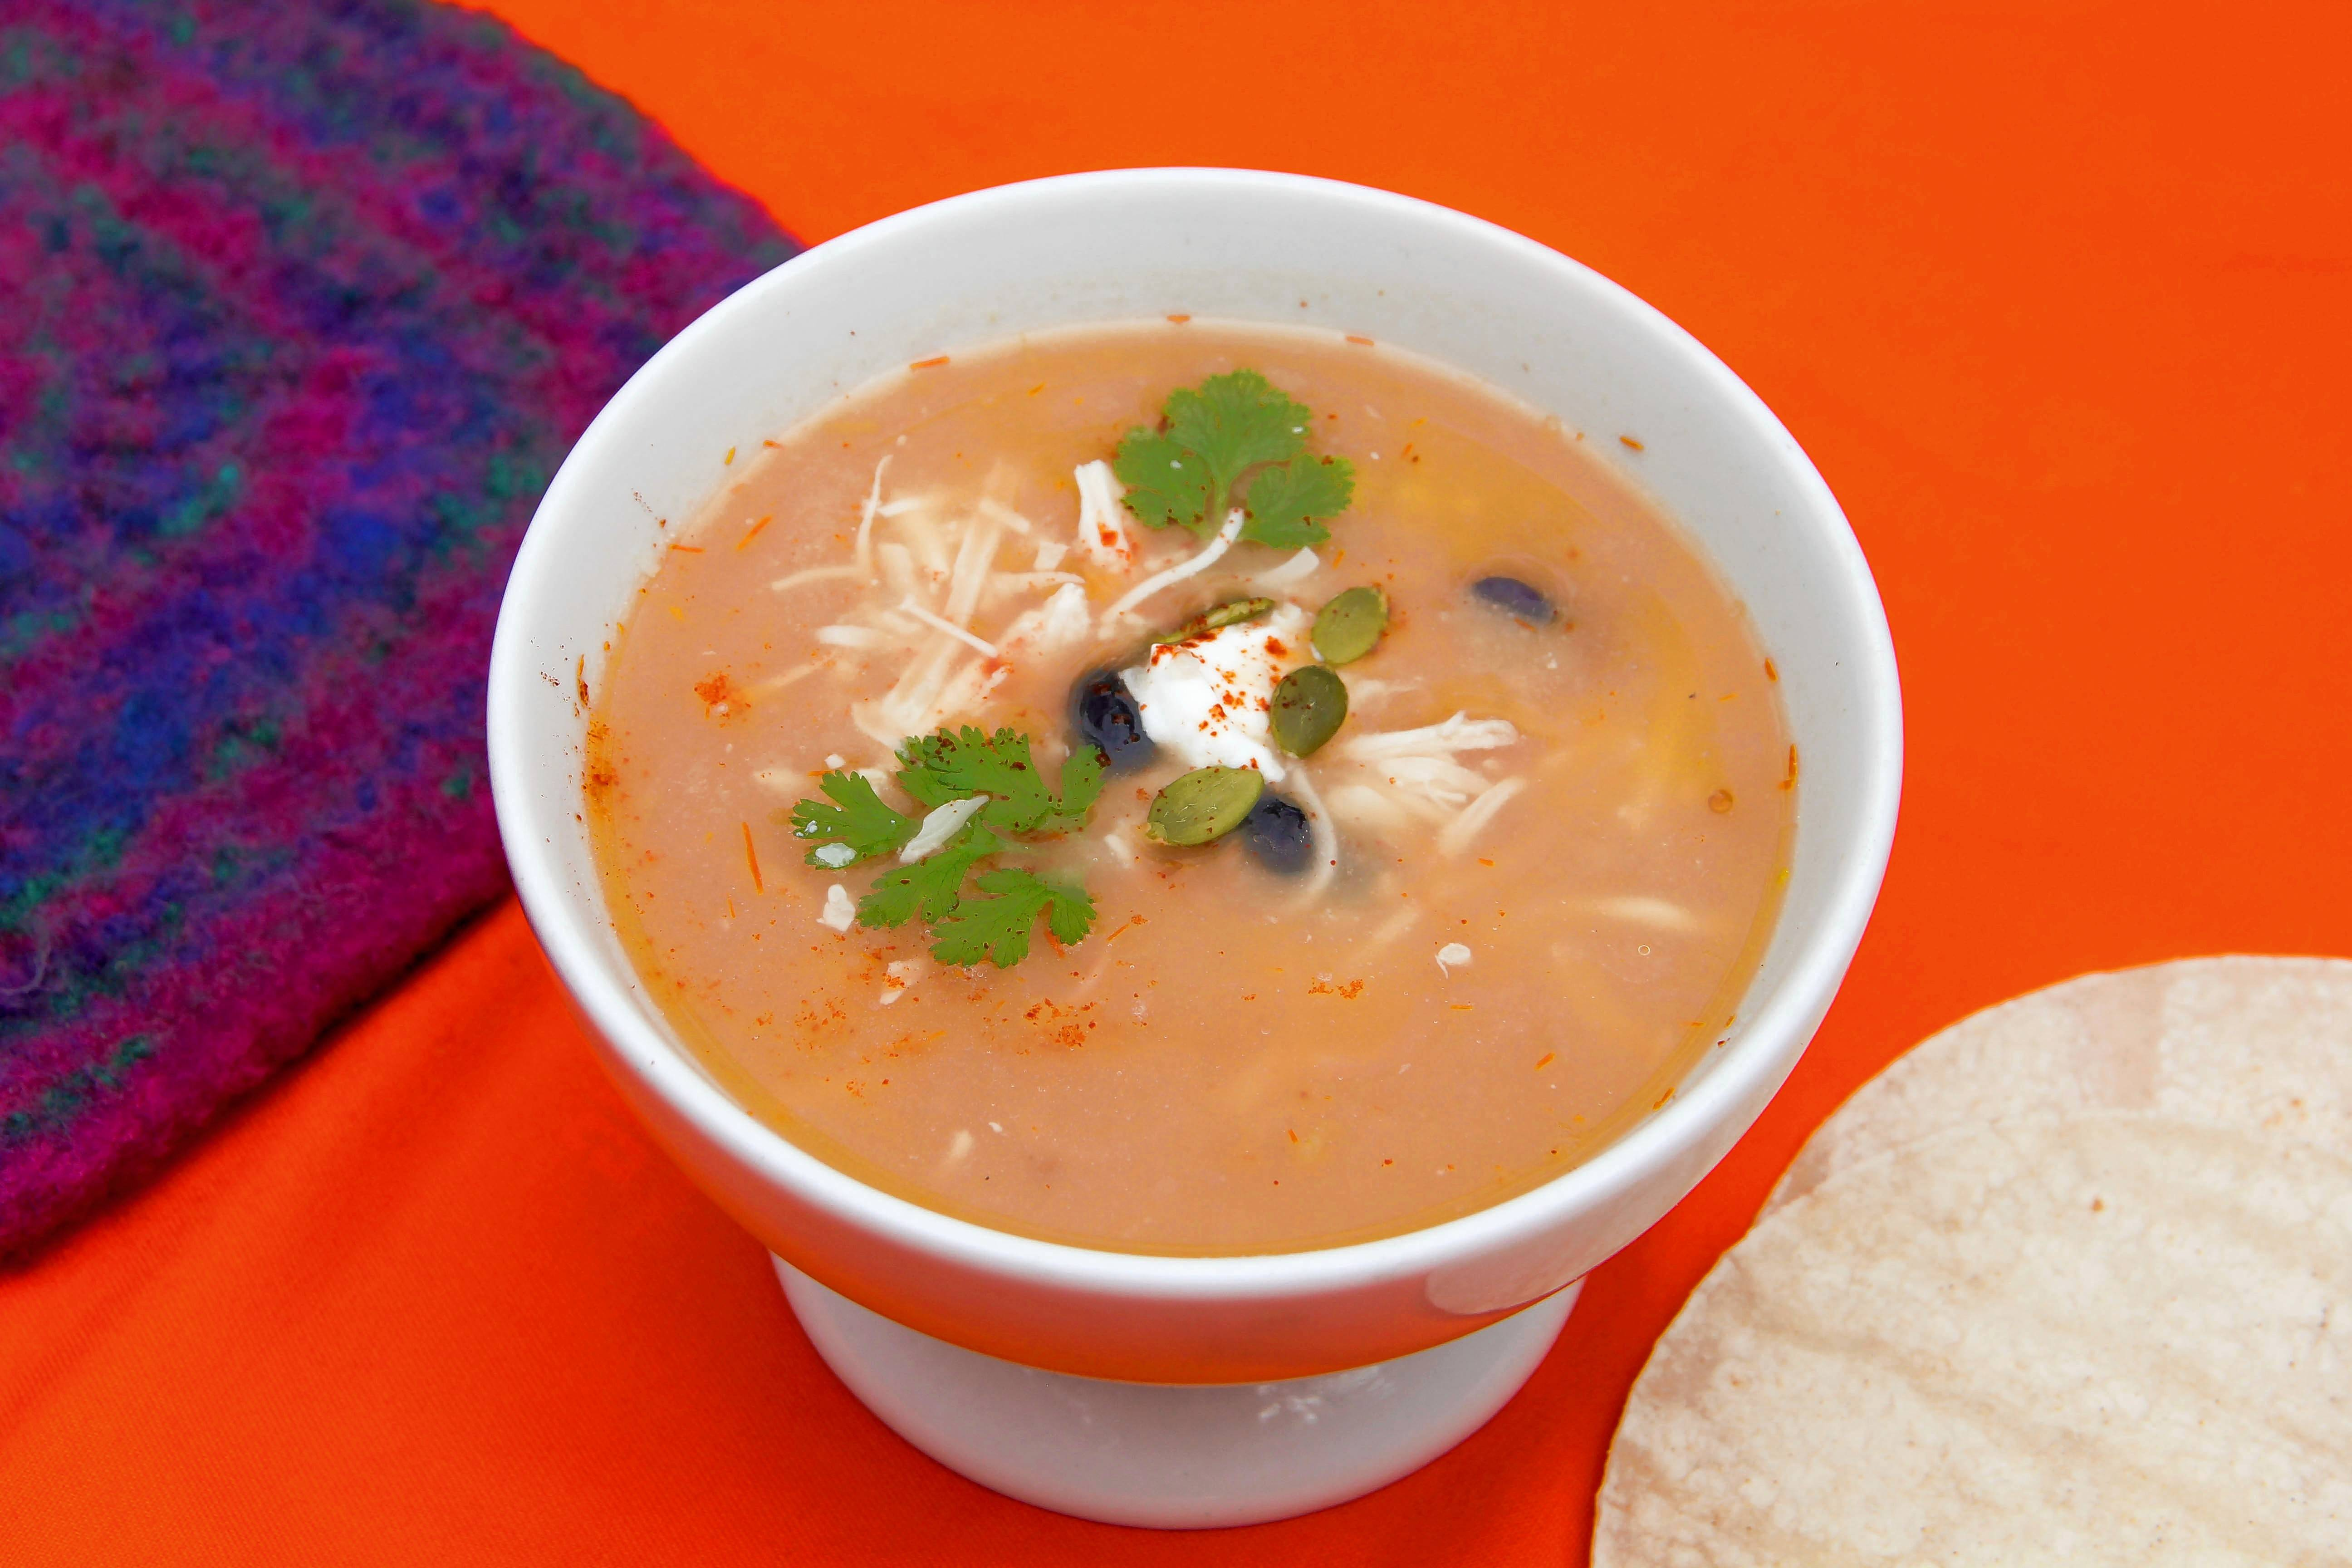 Melissa d'Arabian's 10-minute tortilla soup is fast, filling comfort food.